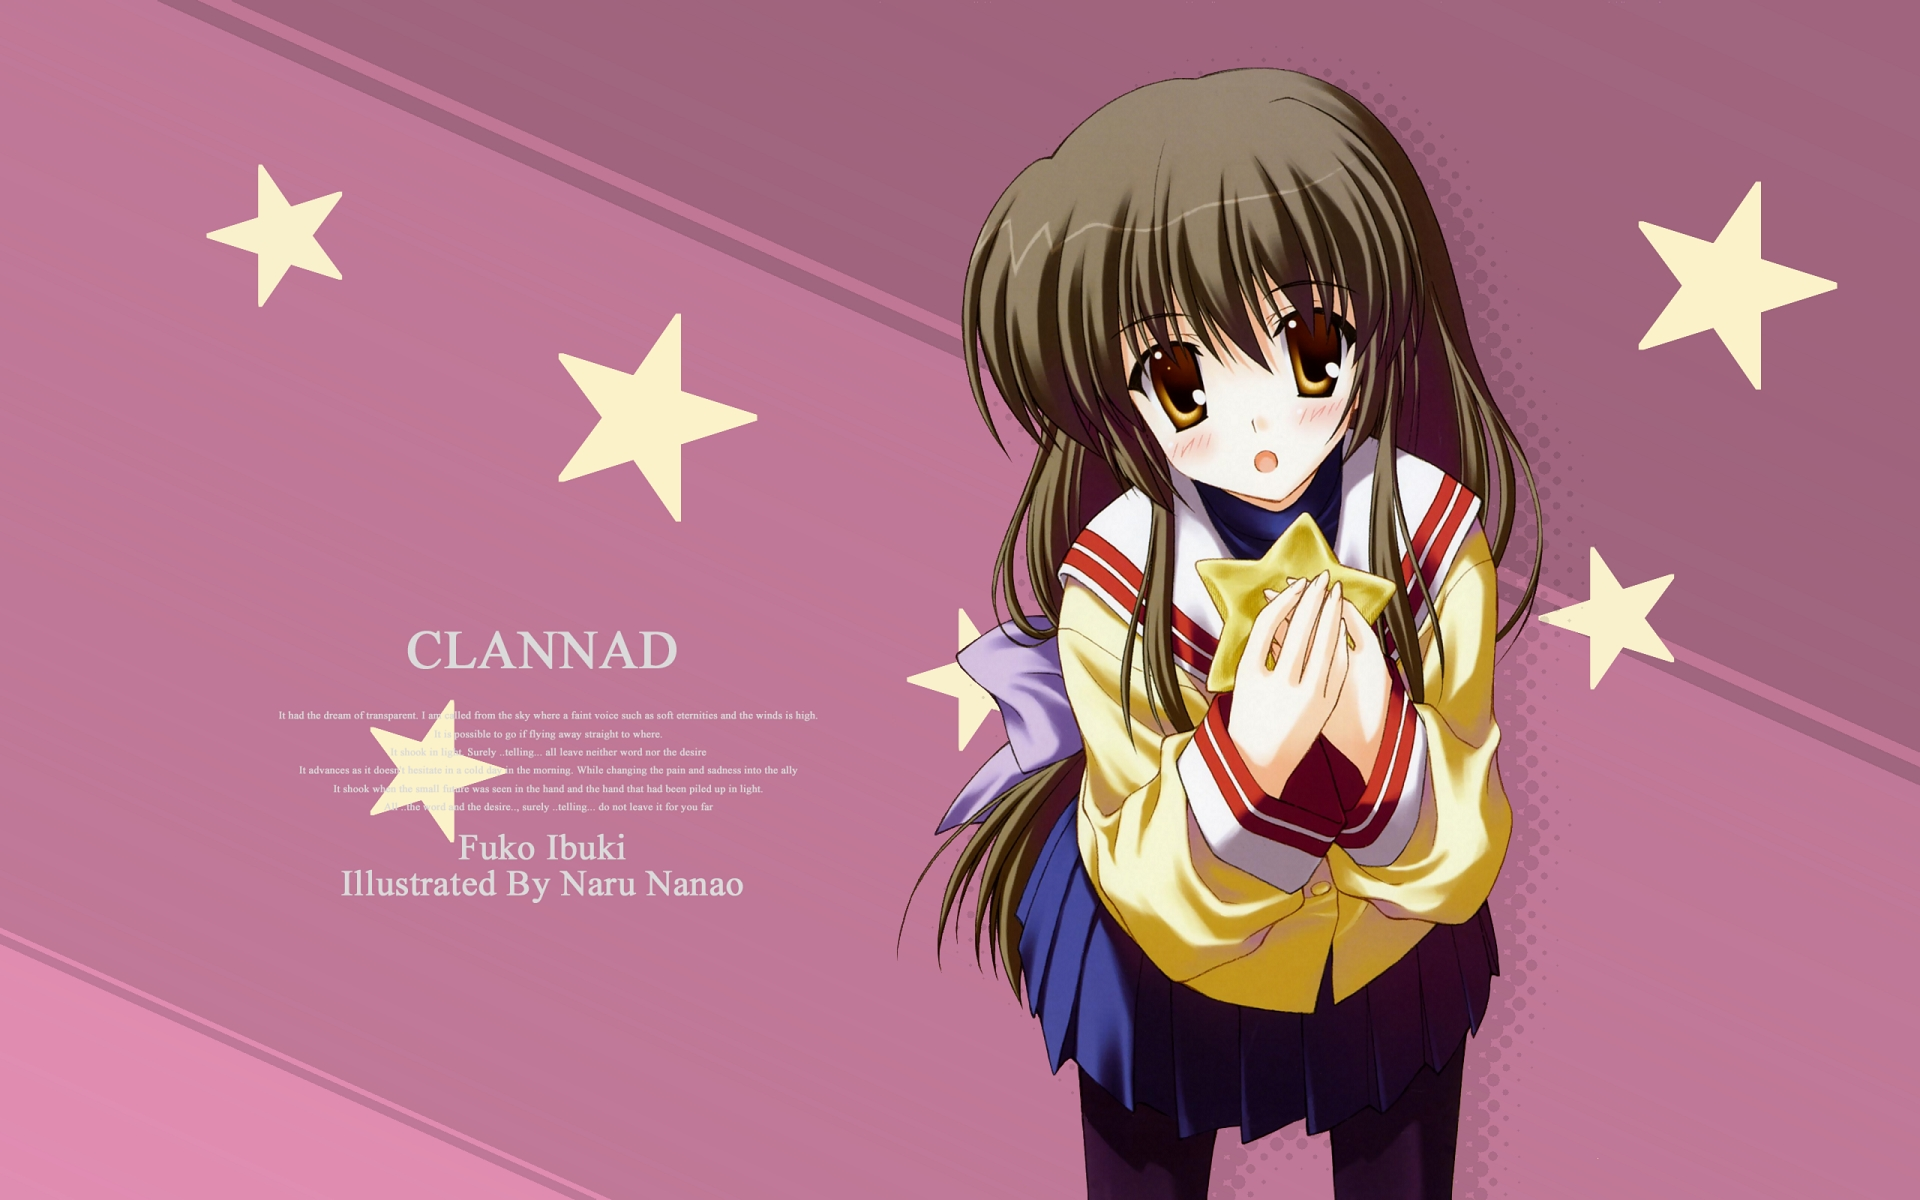 Clannad Anime 11 Background Wallpaper Wallpaper 1920x1200